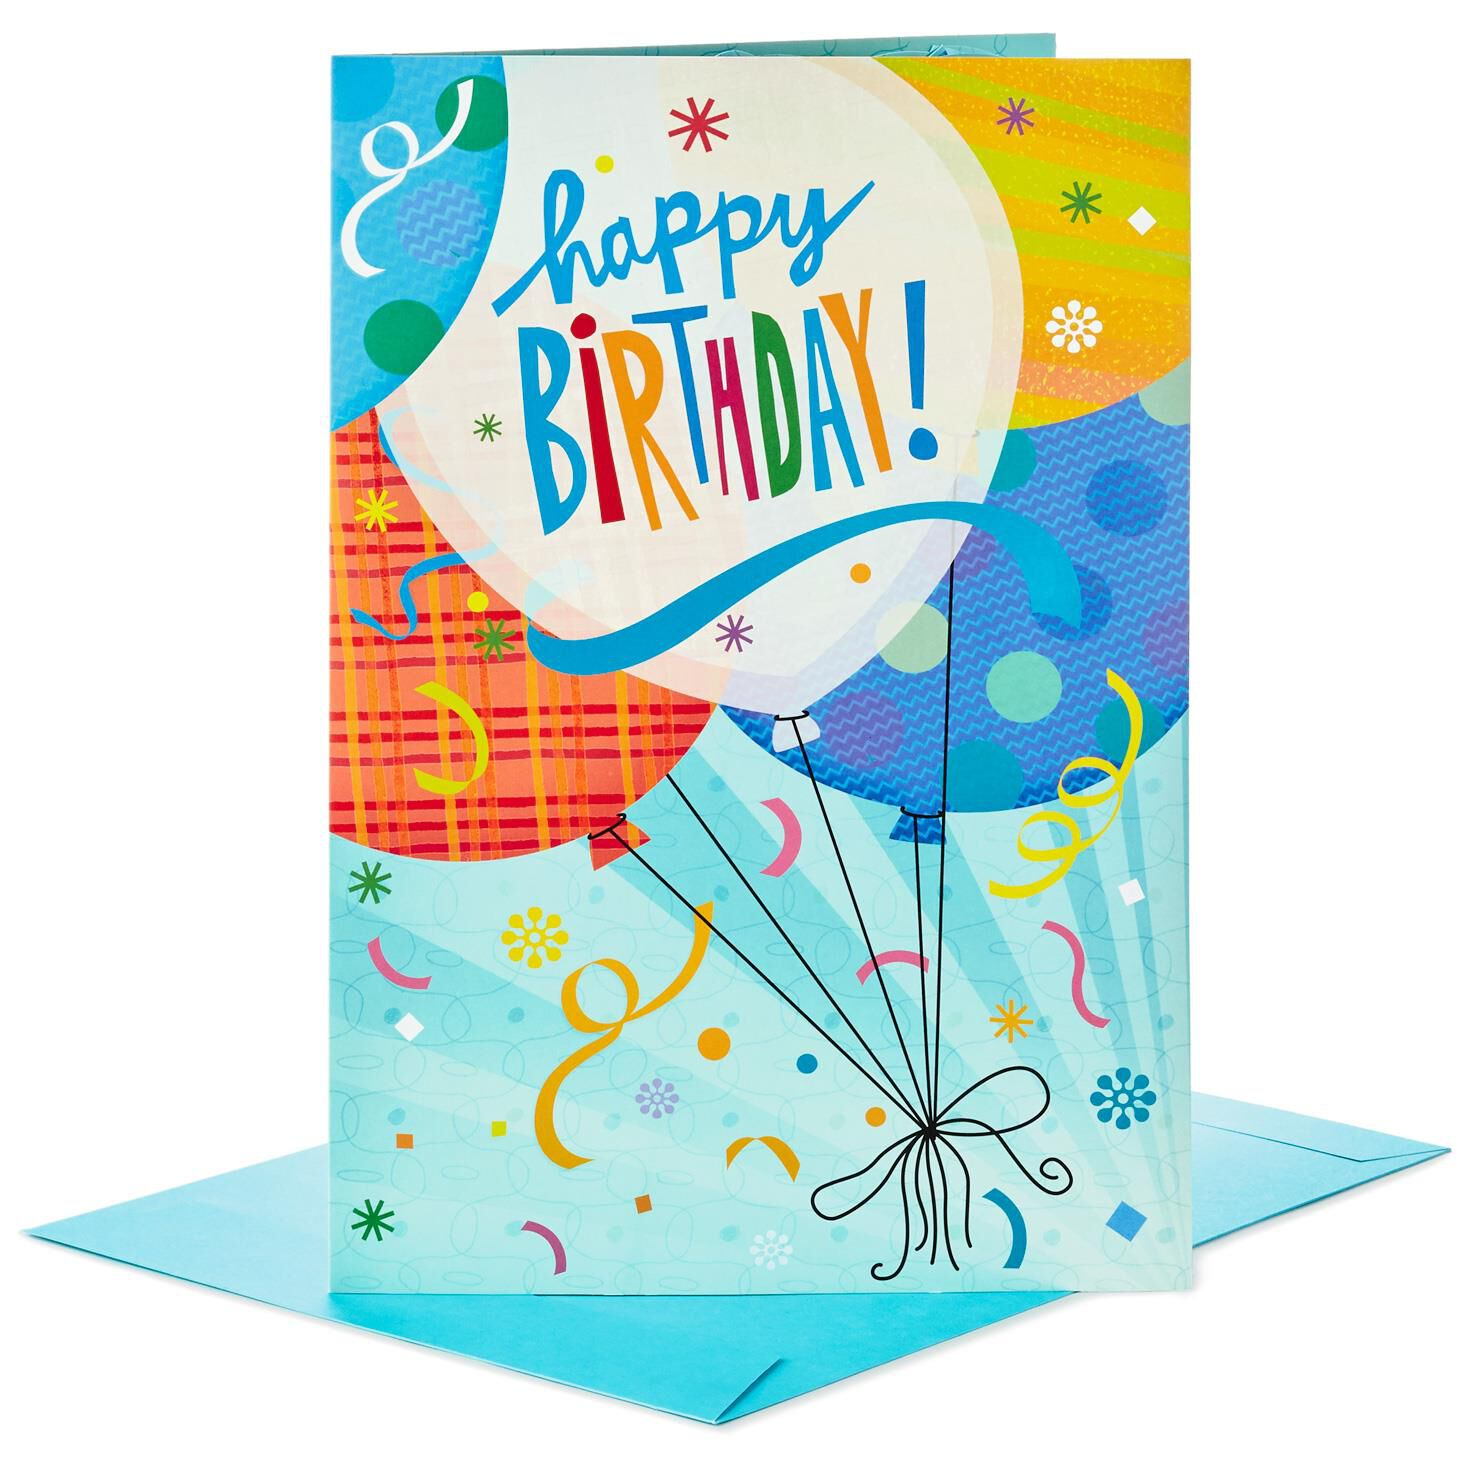 Balloons For Fun Pop Up Jumbo Birthday Card Root Source Image Jpg 1024x1024 Maxine Get Well